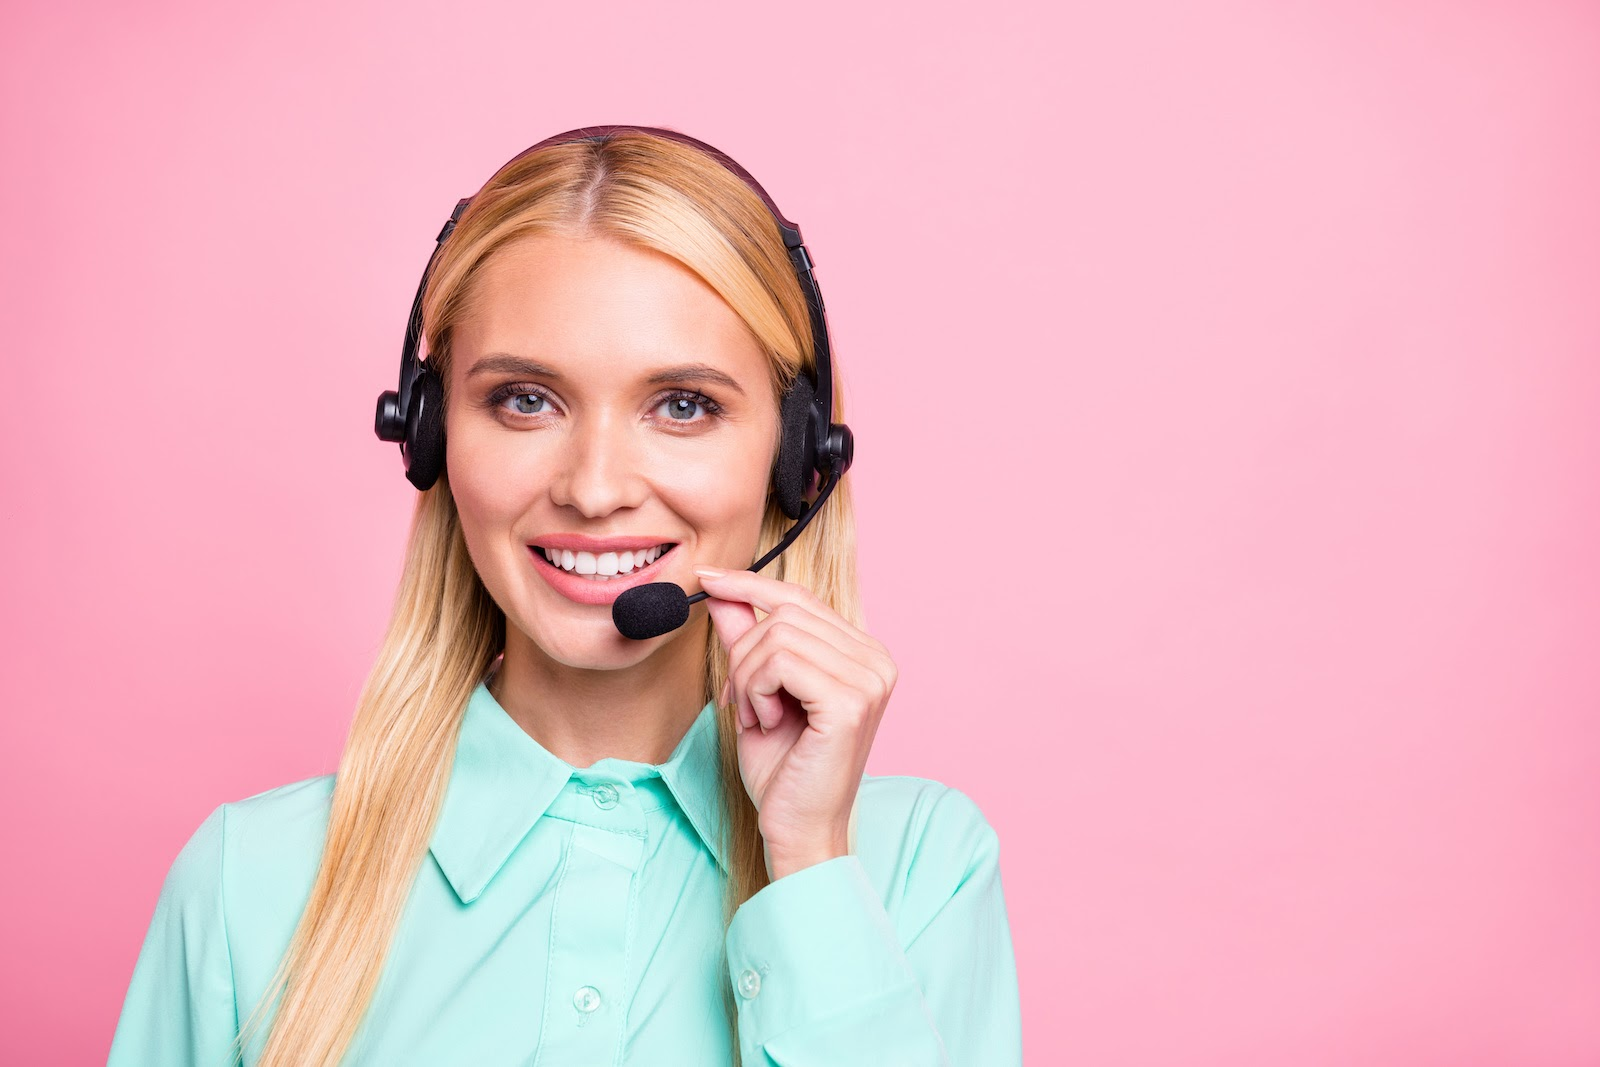 A customer service rep offers support for an event technology platform